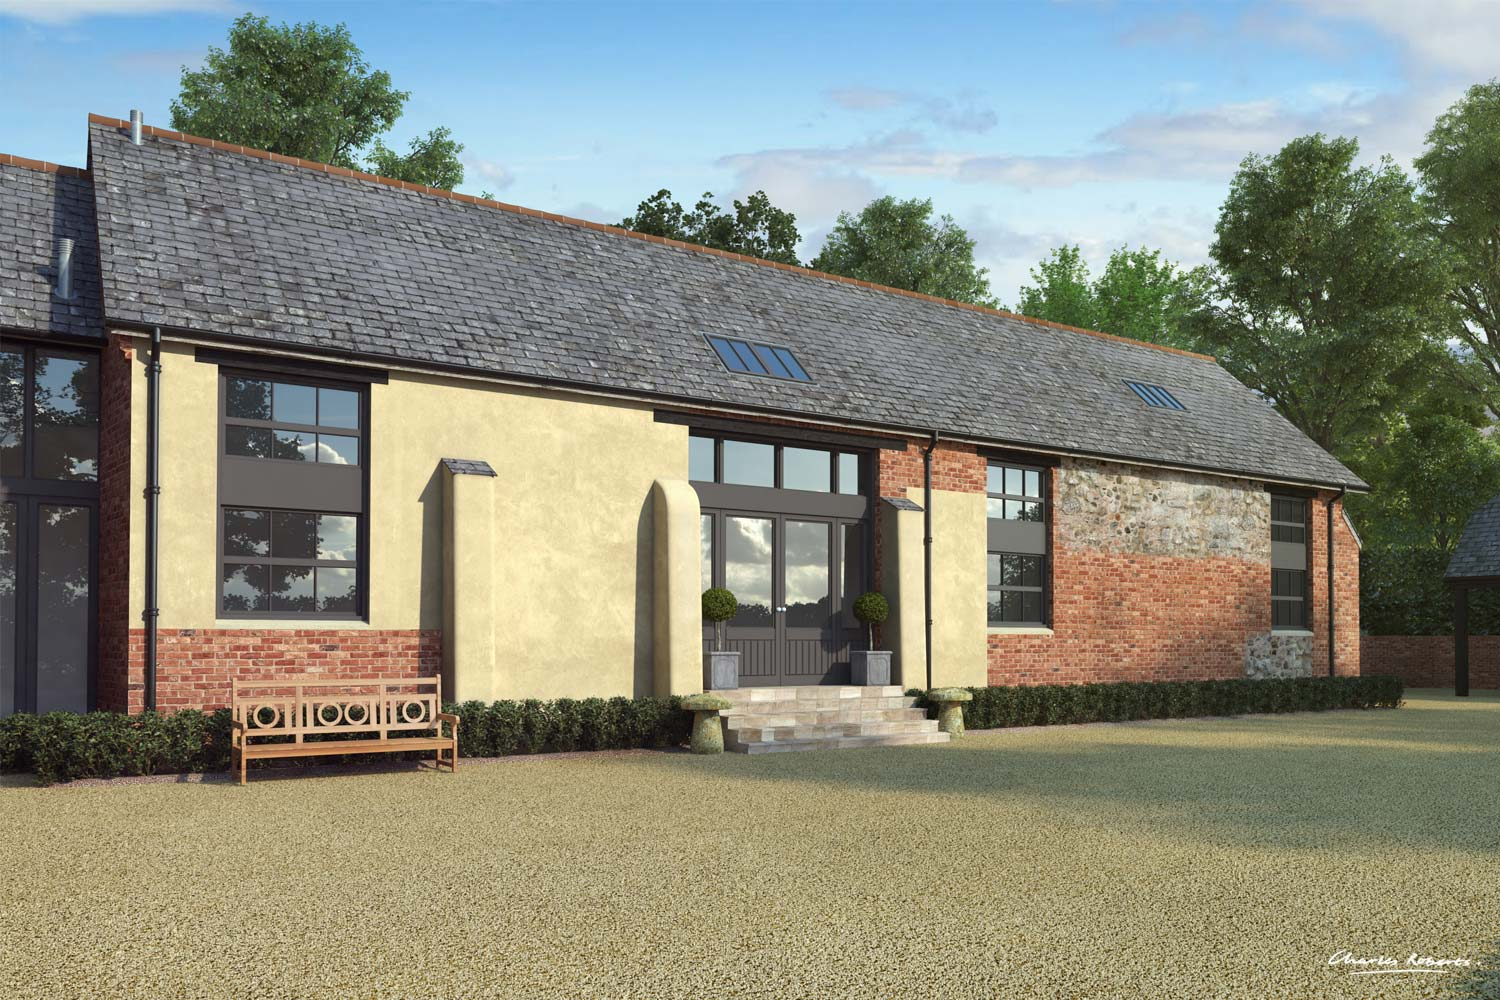 Artists impression of the proposed barn conversion